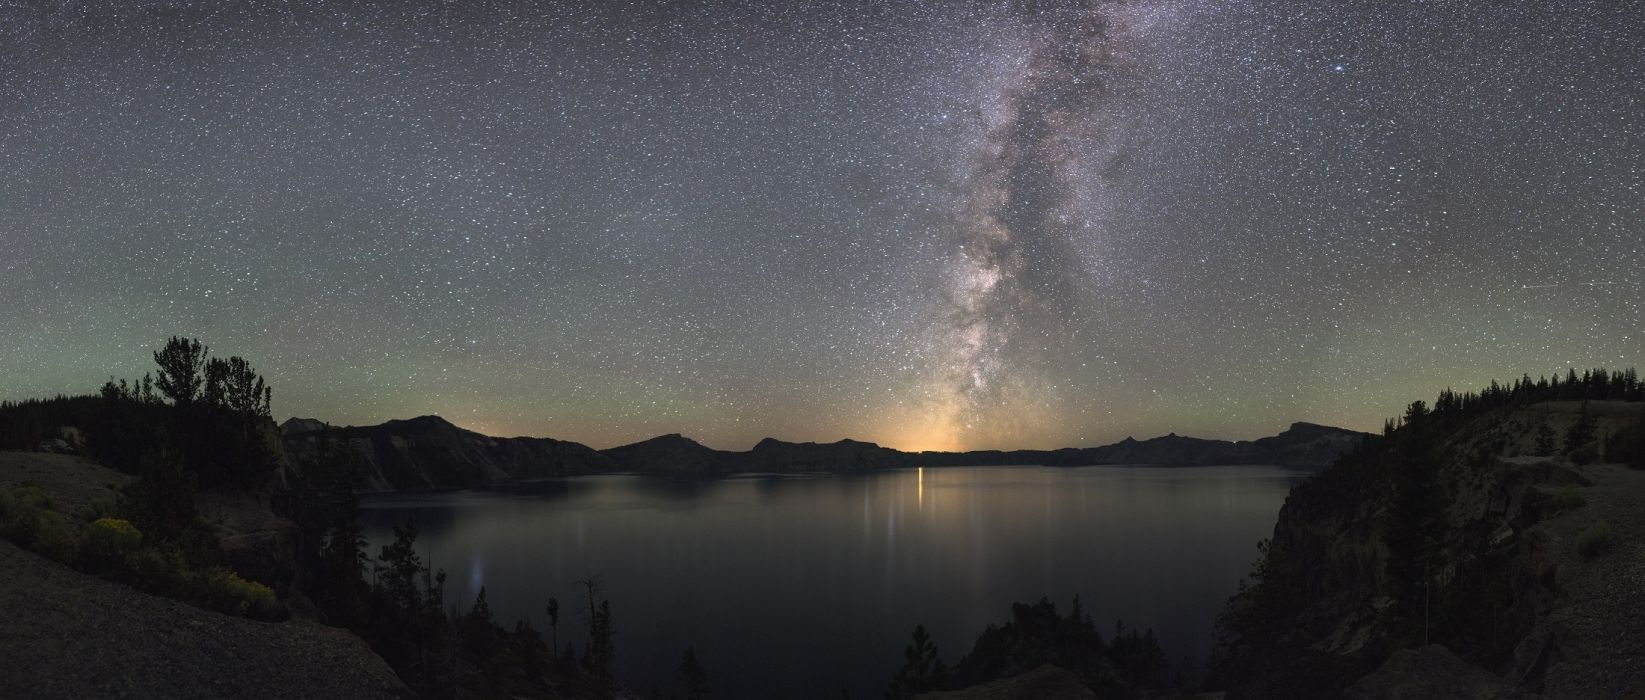 cosmos crater lake national park dawn dusk evening galaxy lake landscape light milky way moon mountain natural night oregon outdoors panorama reflection scenery silhouettes sky starry stars sunset travel view water wilderness wallpaper